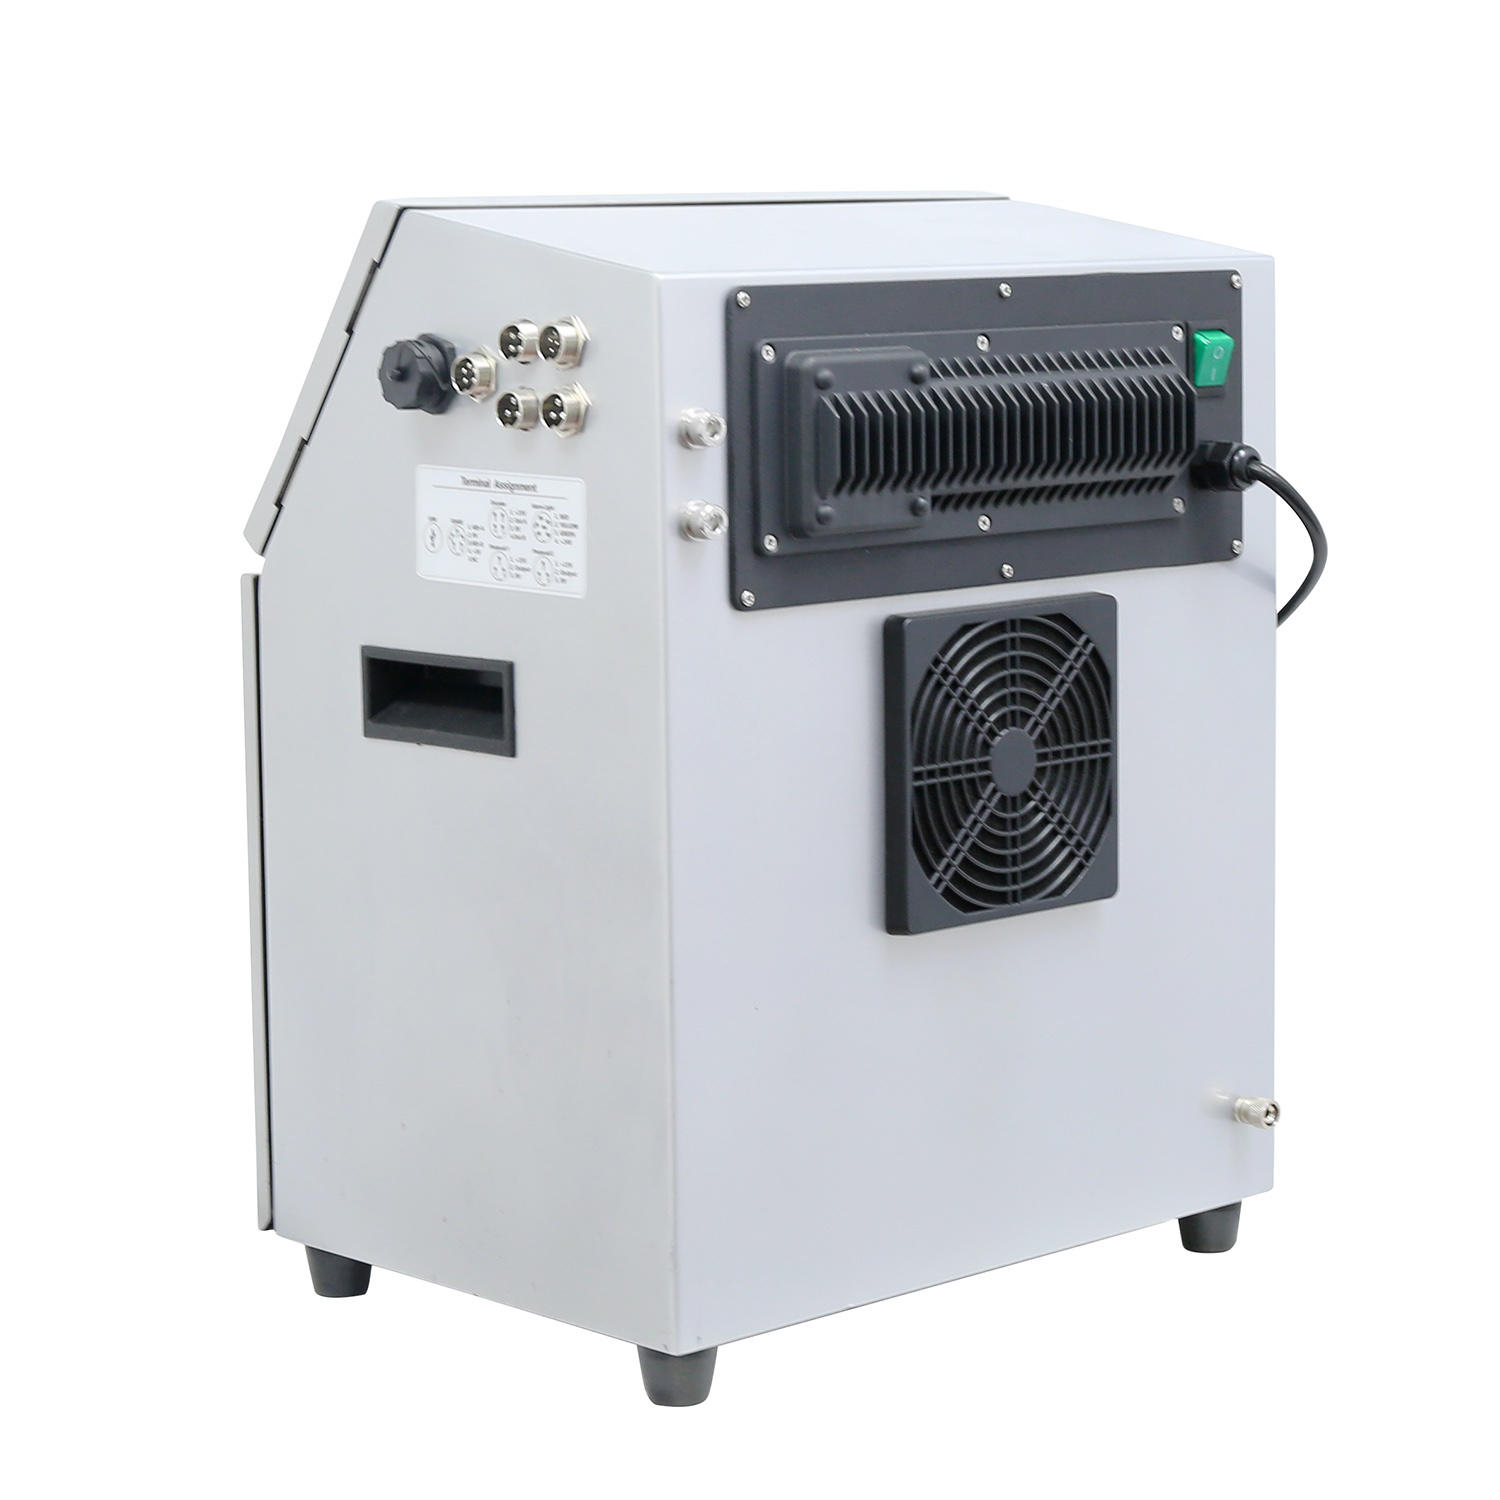 Lead Tech Lt800 Expiry Date Printing Eco Solvent Printer